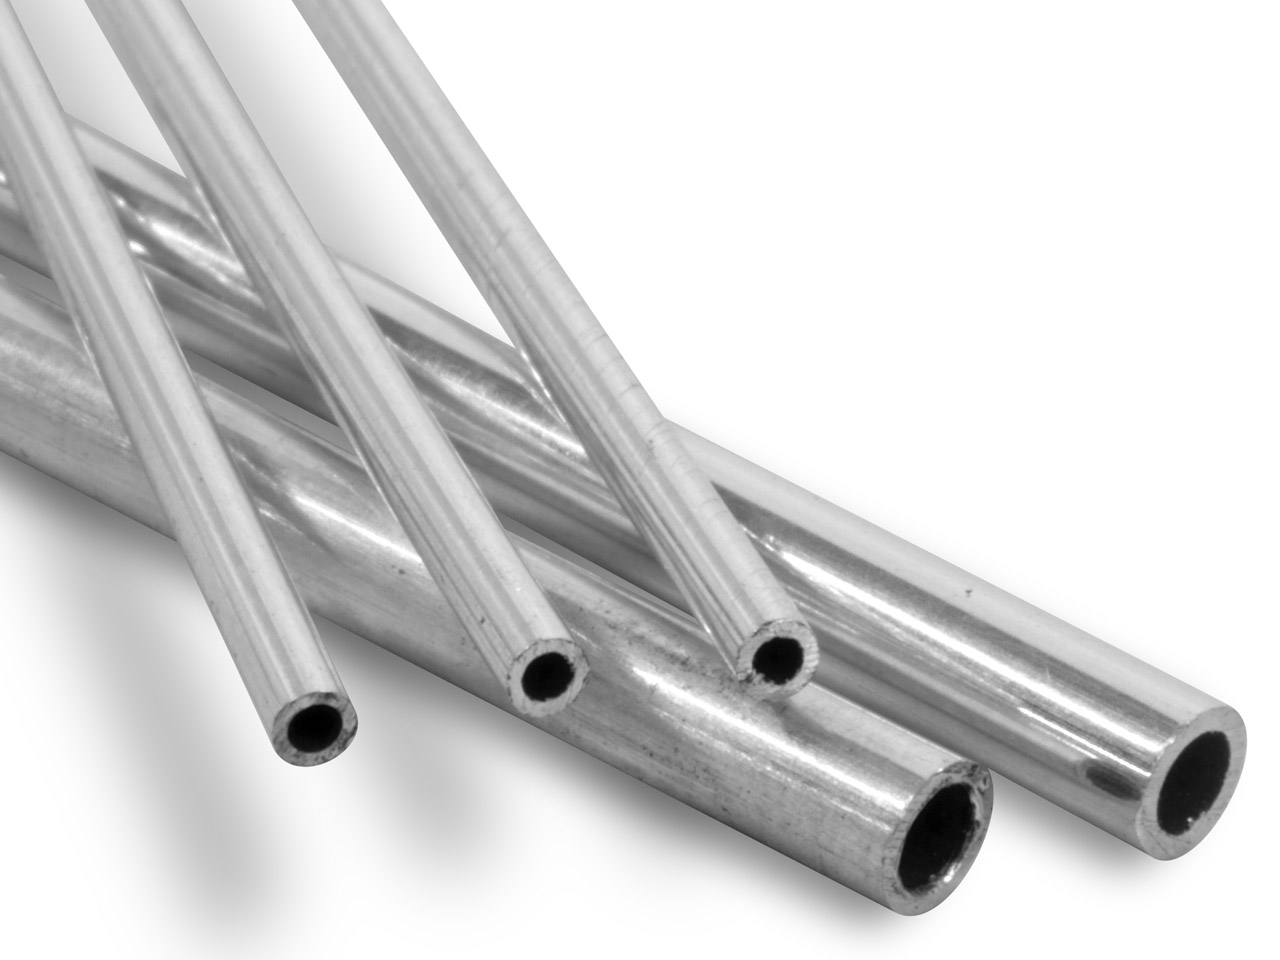 Sterling Silver Tube, Ref 2,       Outside Diameter 4.5mm,            Inside Diameter 3.5mm, 0.5mm Wall  Thickness